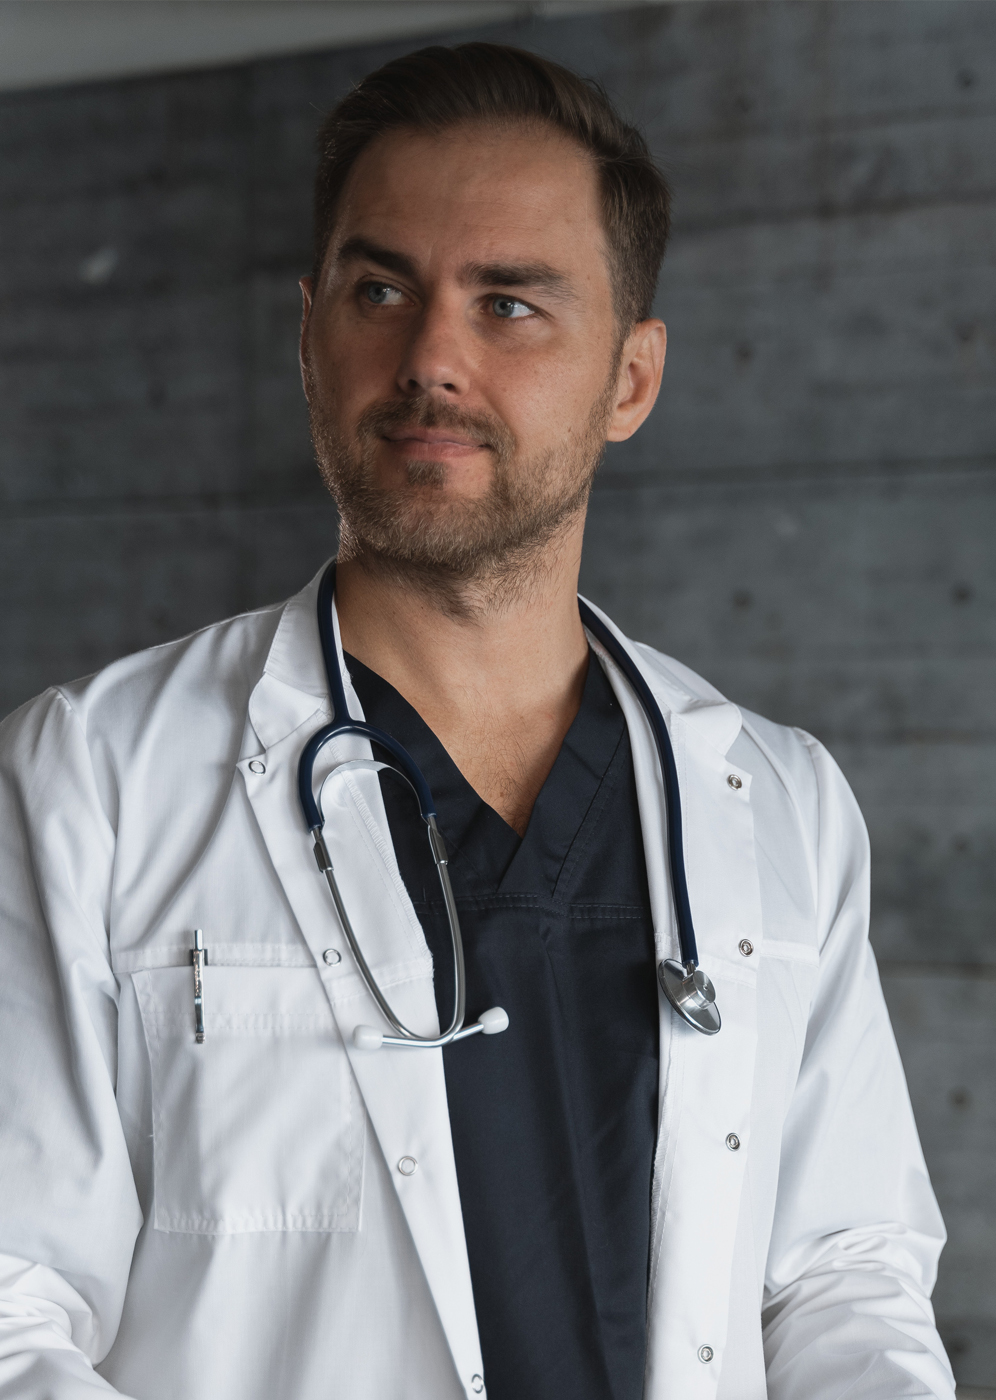 Experience Doctor